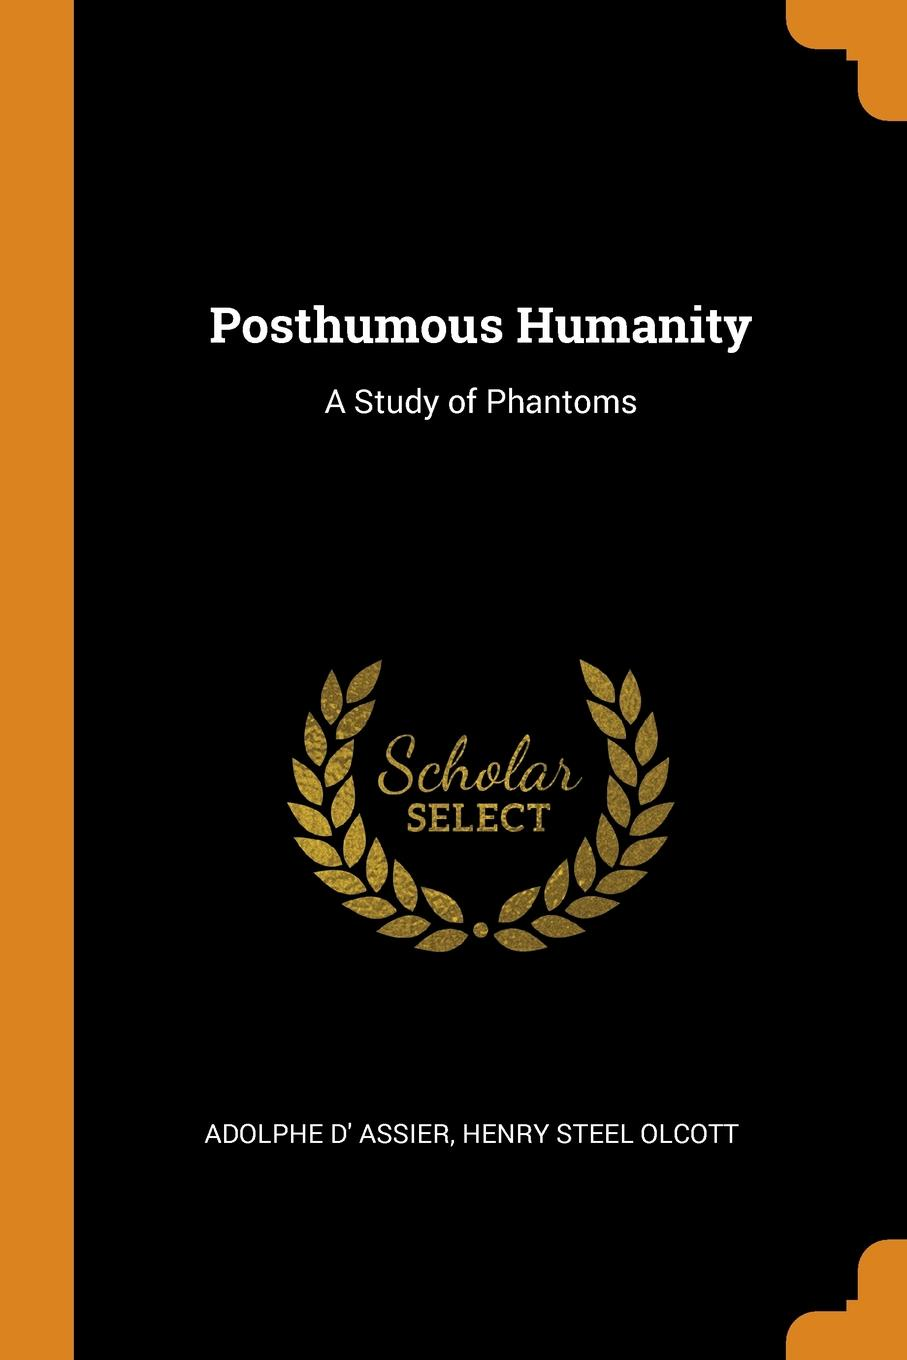 Adolphe d' Assier, Henry Steel Olcott. Posthumous Humanity. A Study of Phantoms